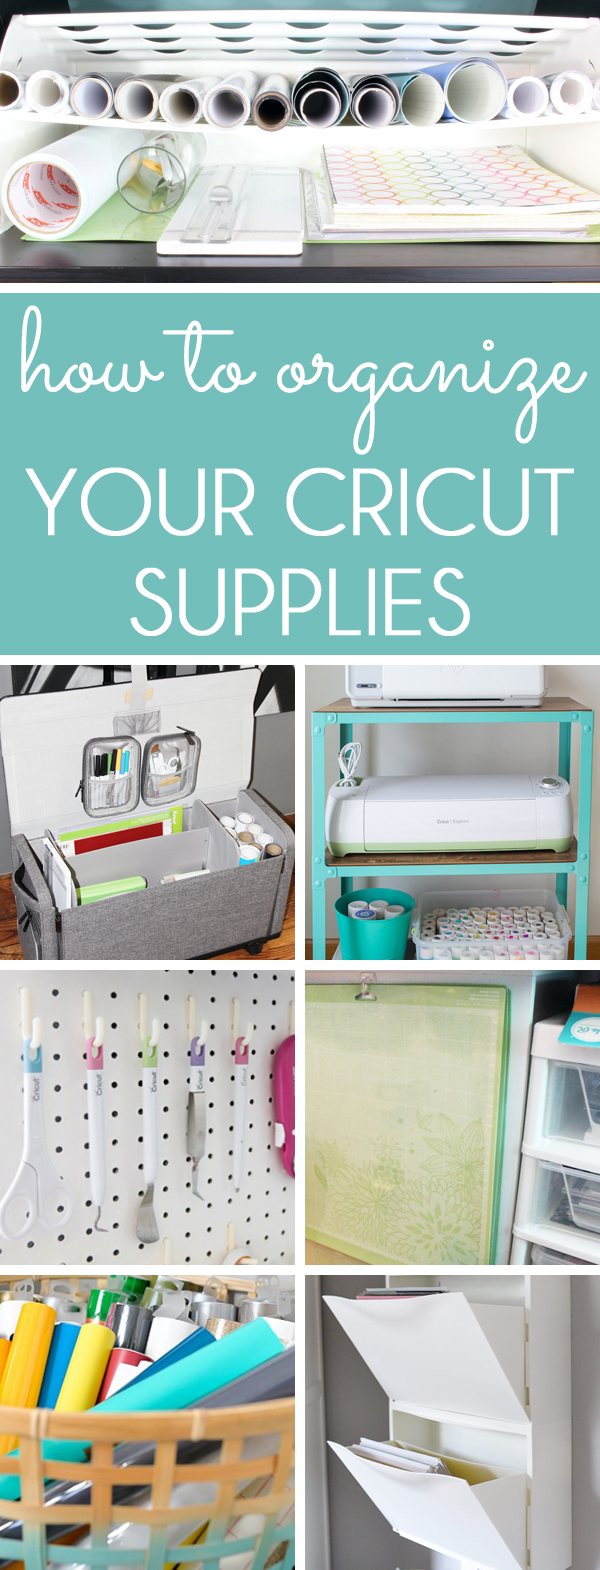 how to organize cricut supplies, vinyl, tools and mats